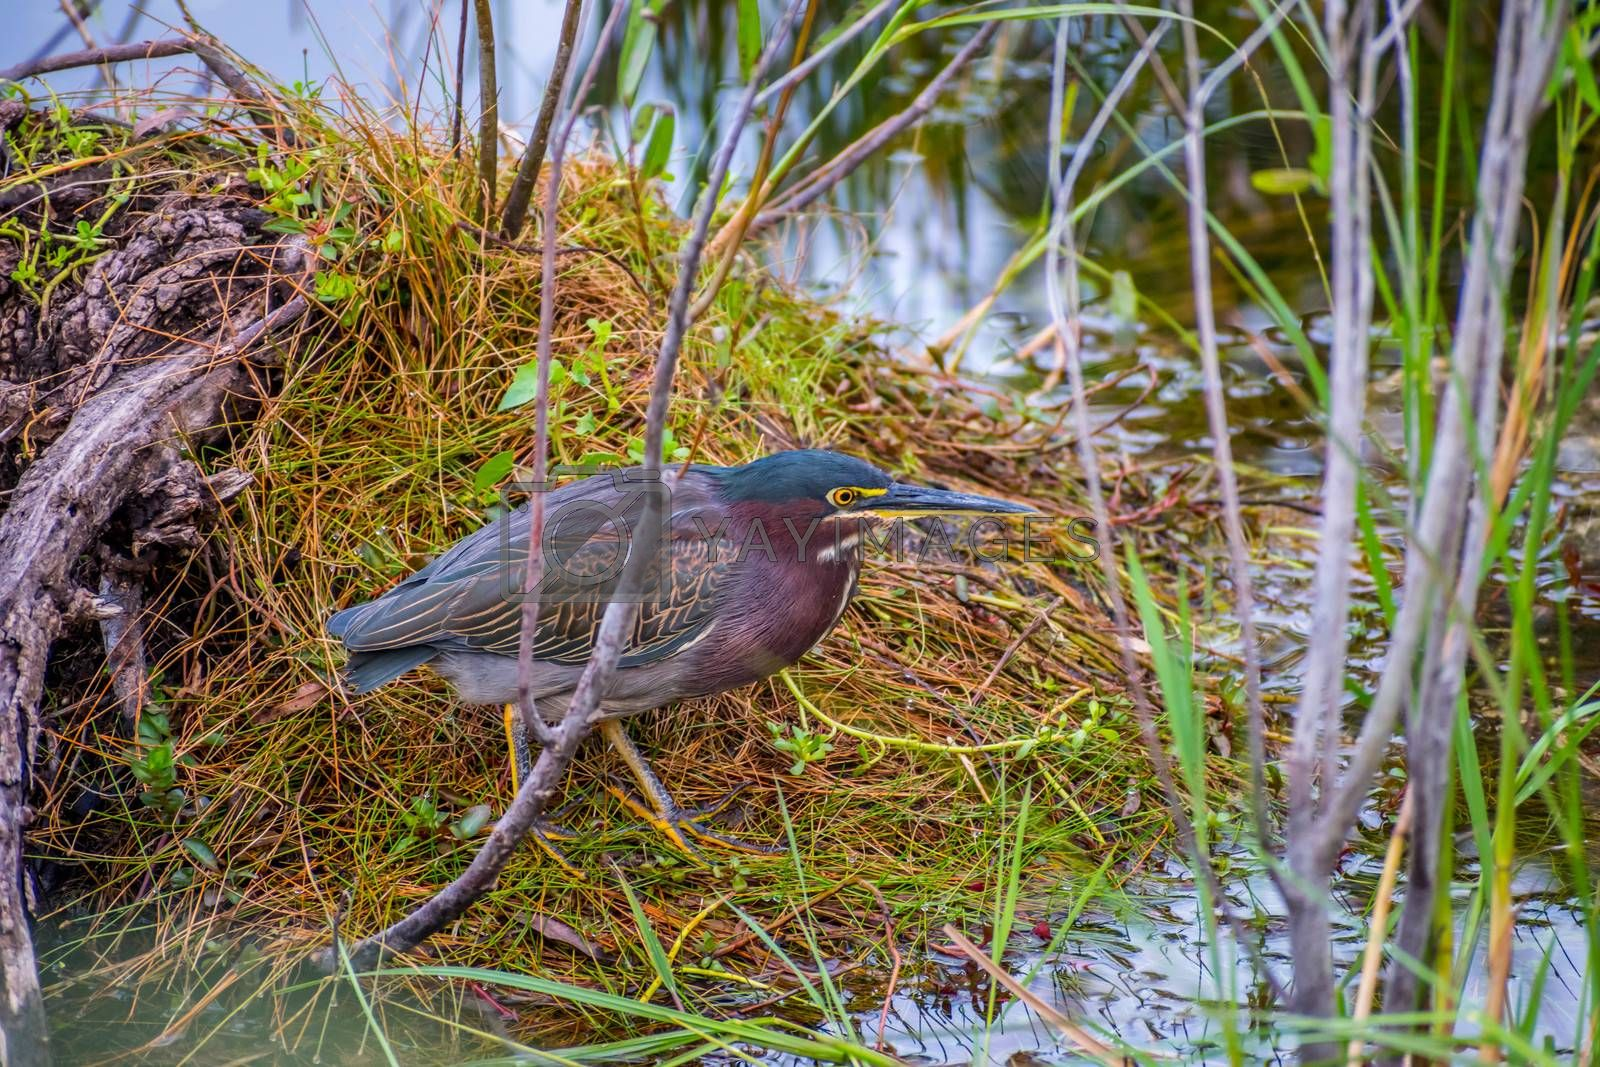 A small and compact type of rare green heron chilling around the national park